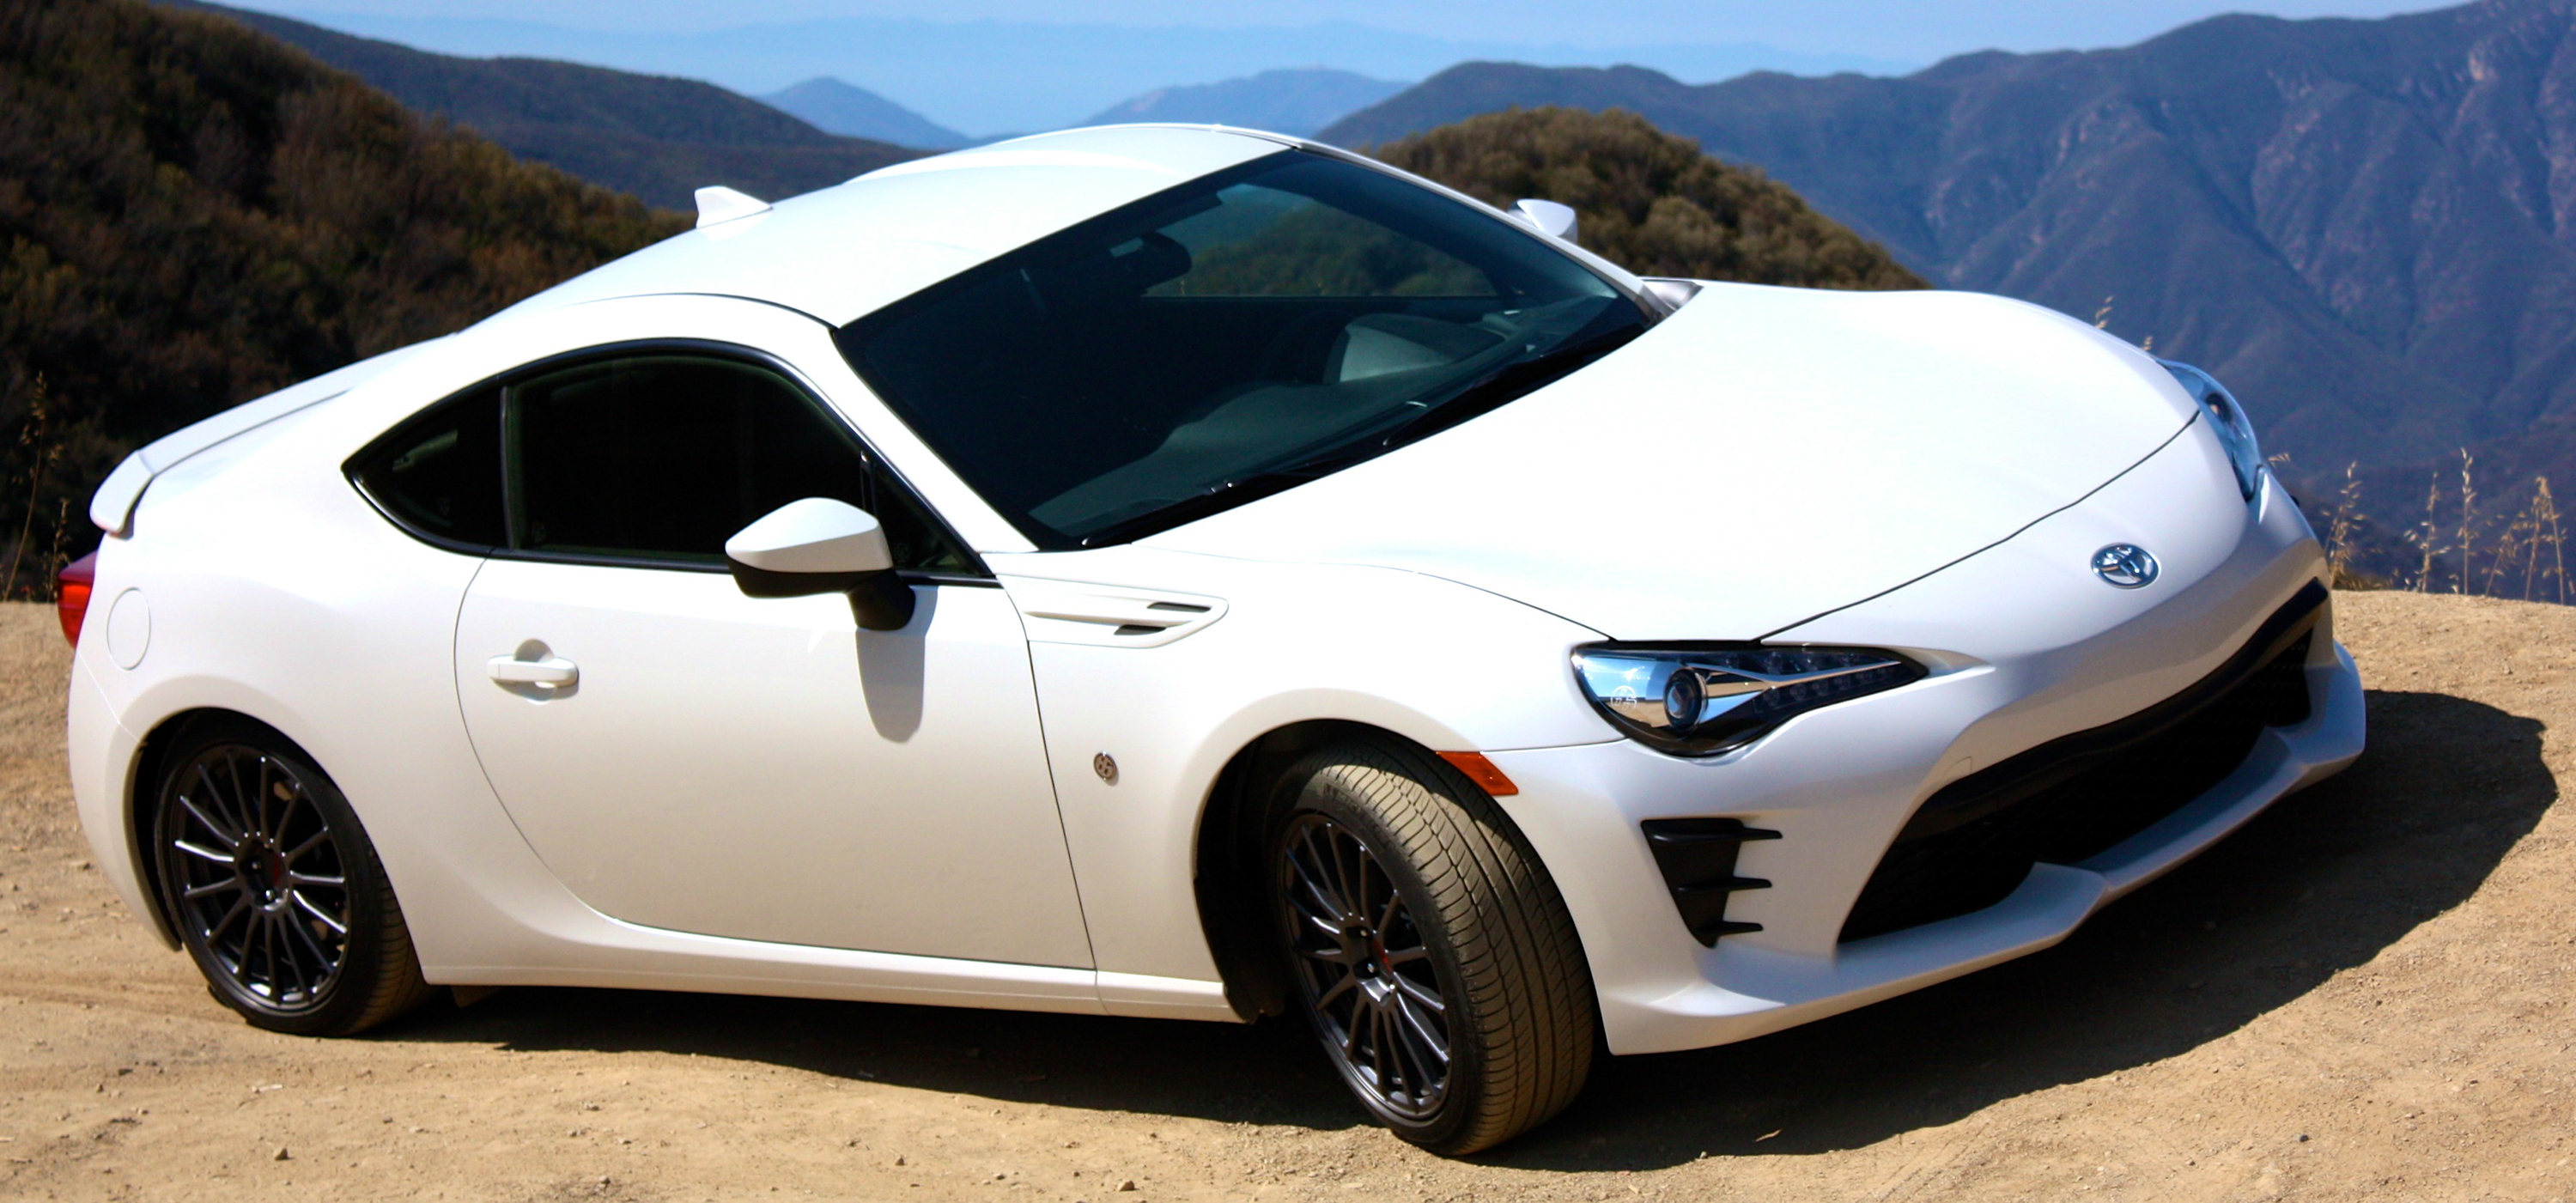 2017 Toyota 86 Driving Impression And Review Pictures